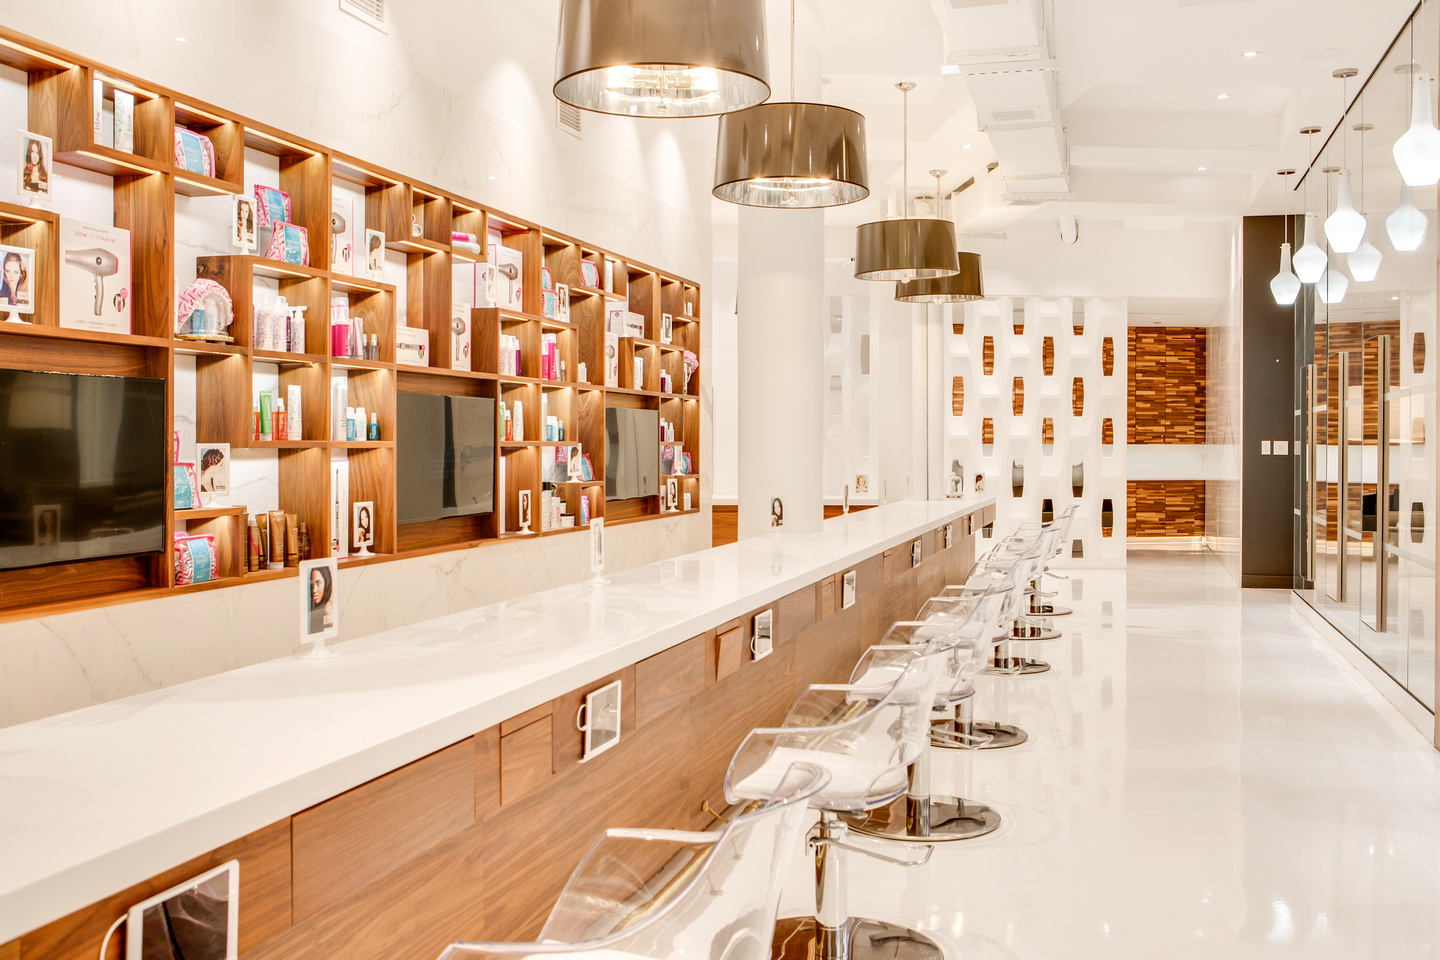 Oneblowdrybar macy 39 s herald square new york new york for 38th street salon